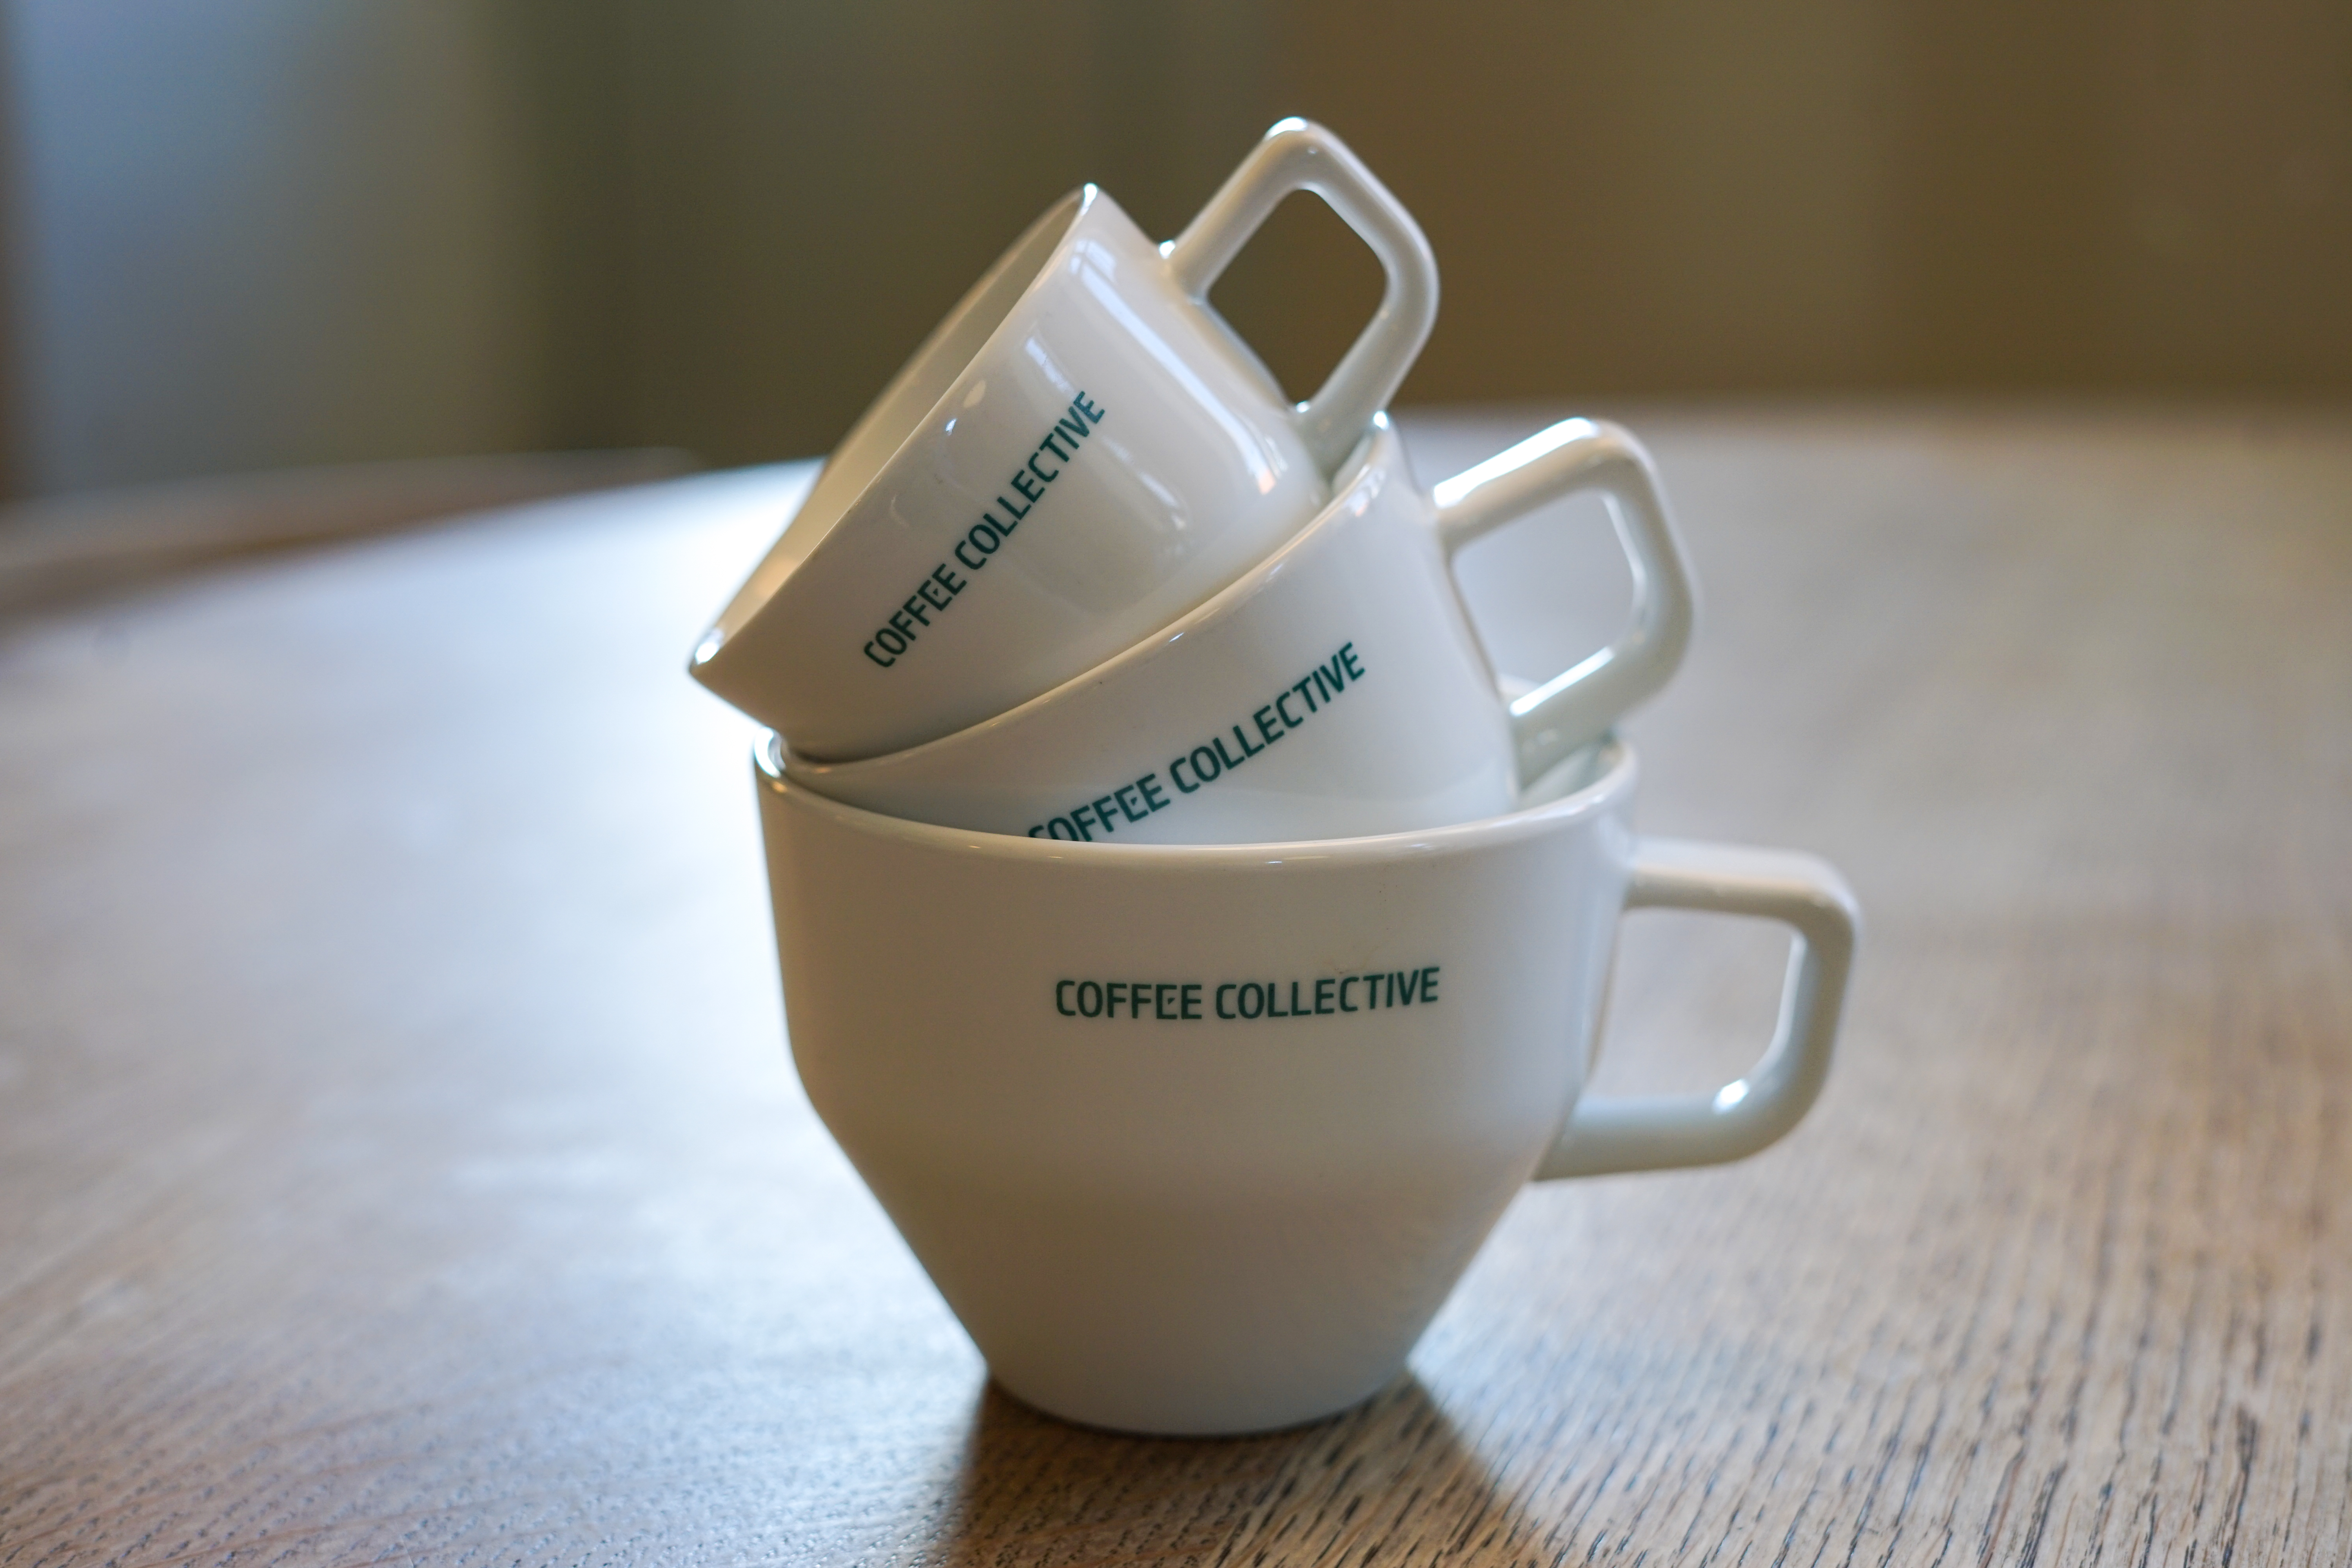 A new cup series made in collaboration with Acme